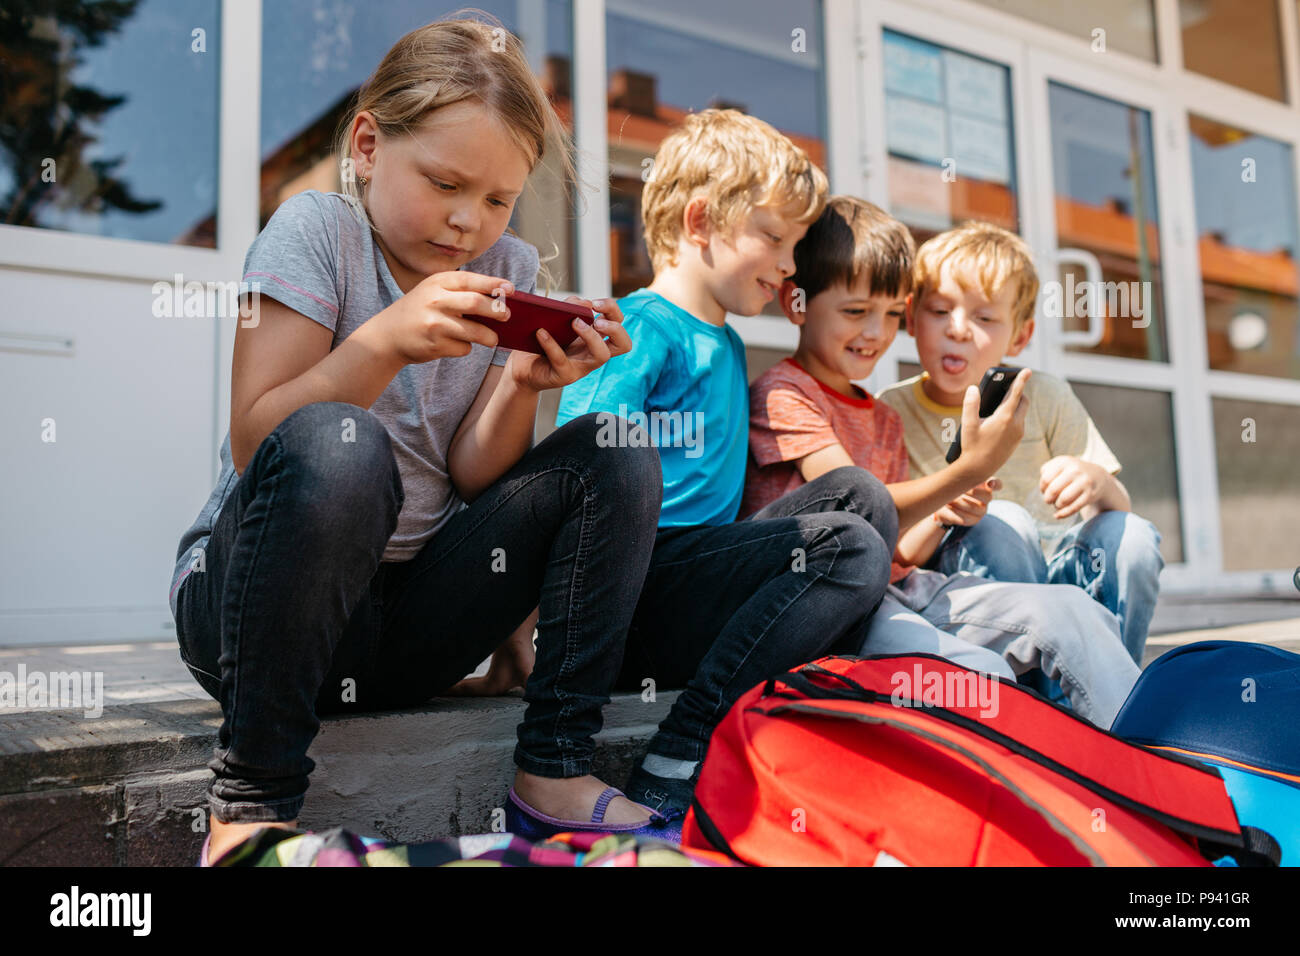 Kids sitting on stairs in front of school web browsing. Schoolchildren having fun playing with mobiles during a break. - Stock Image